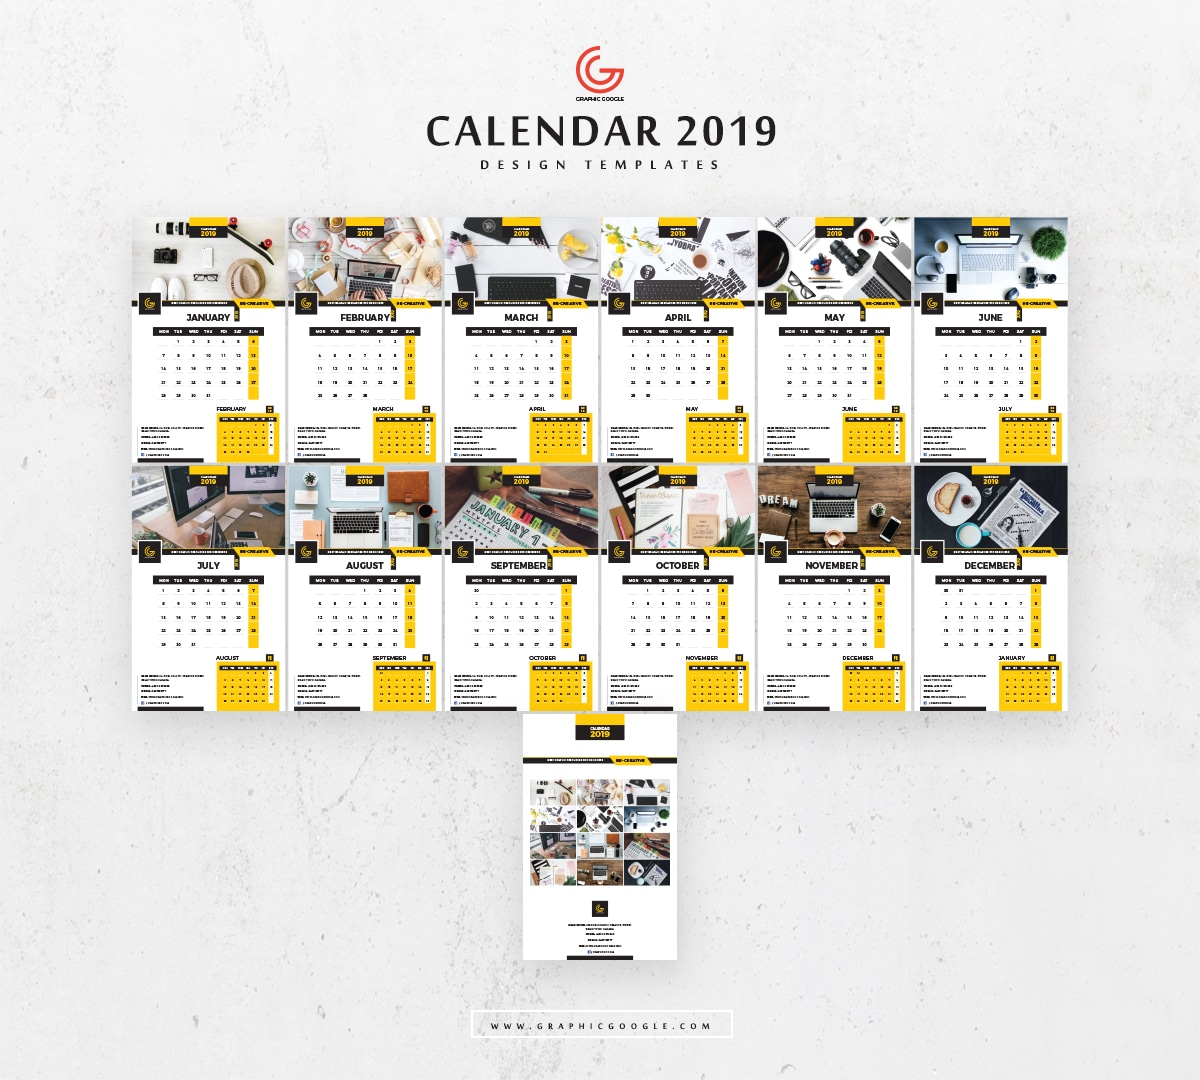 Calendar Design Free Download : Calendar psd mockup download for free designhooks